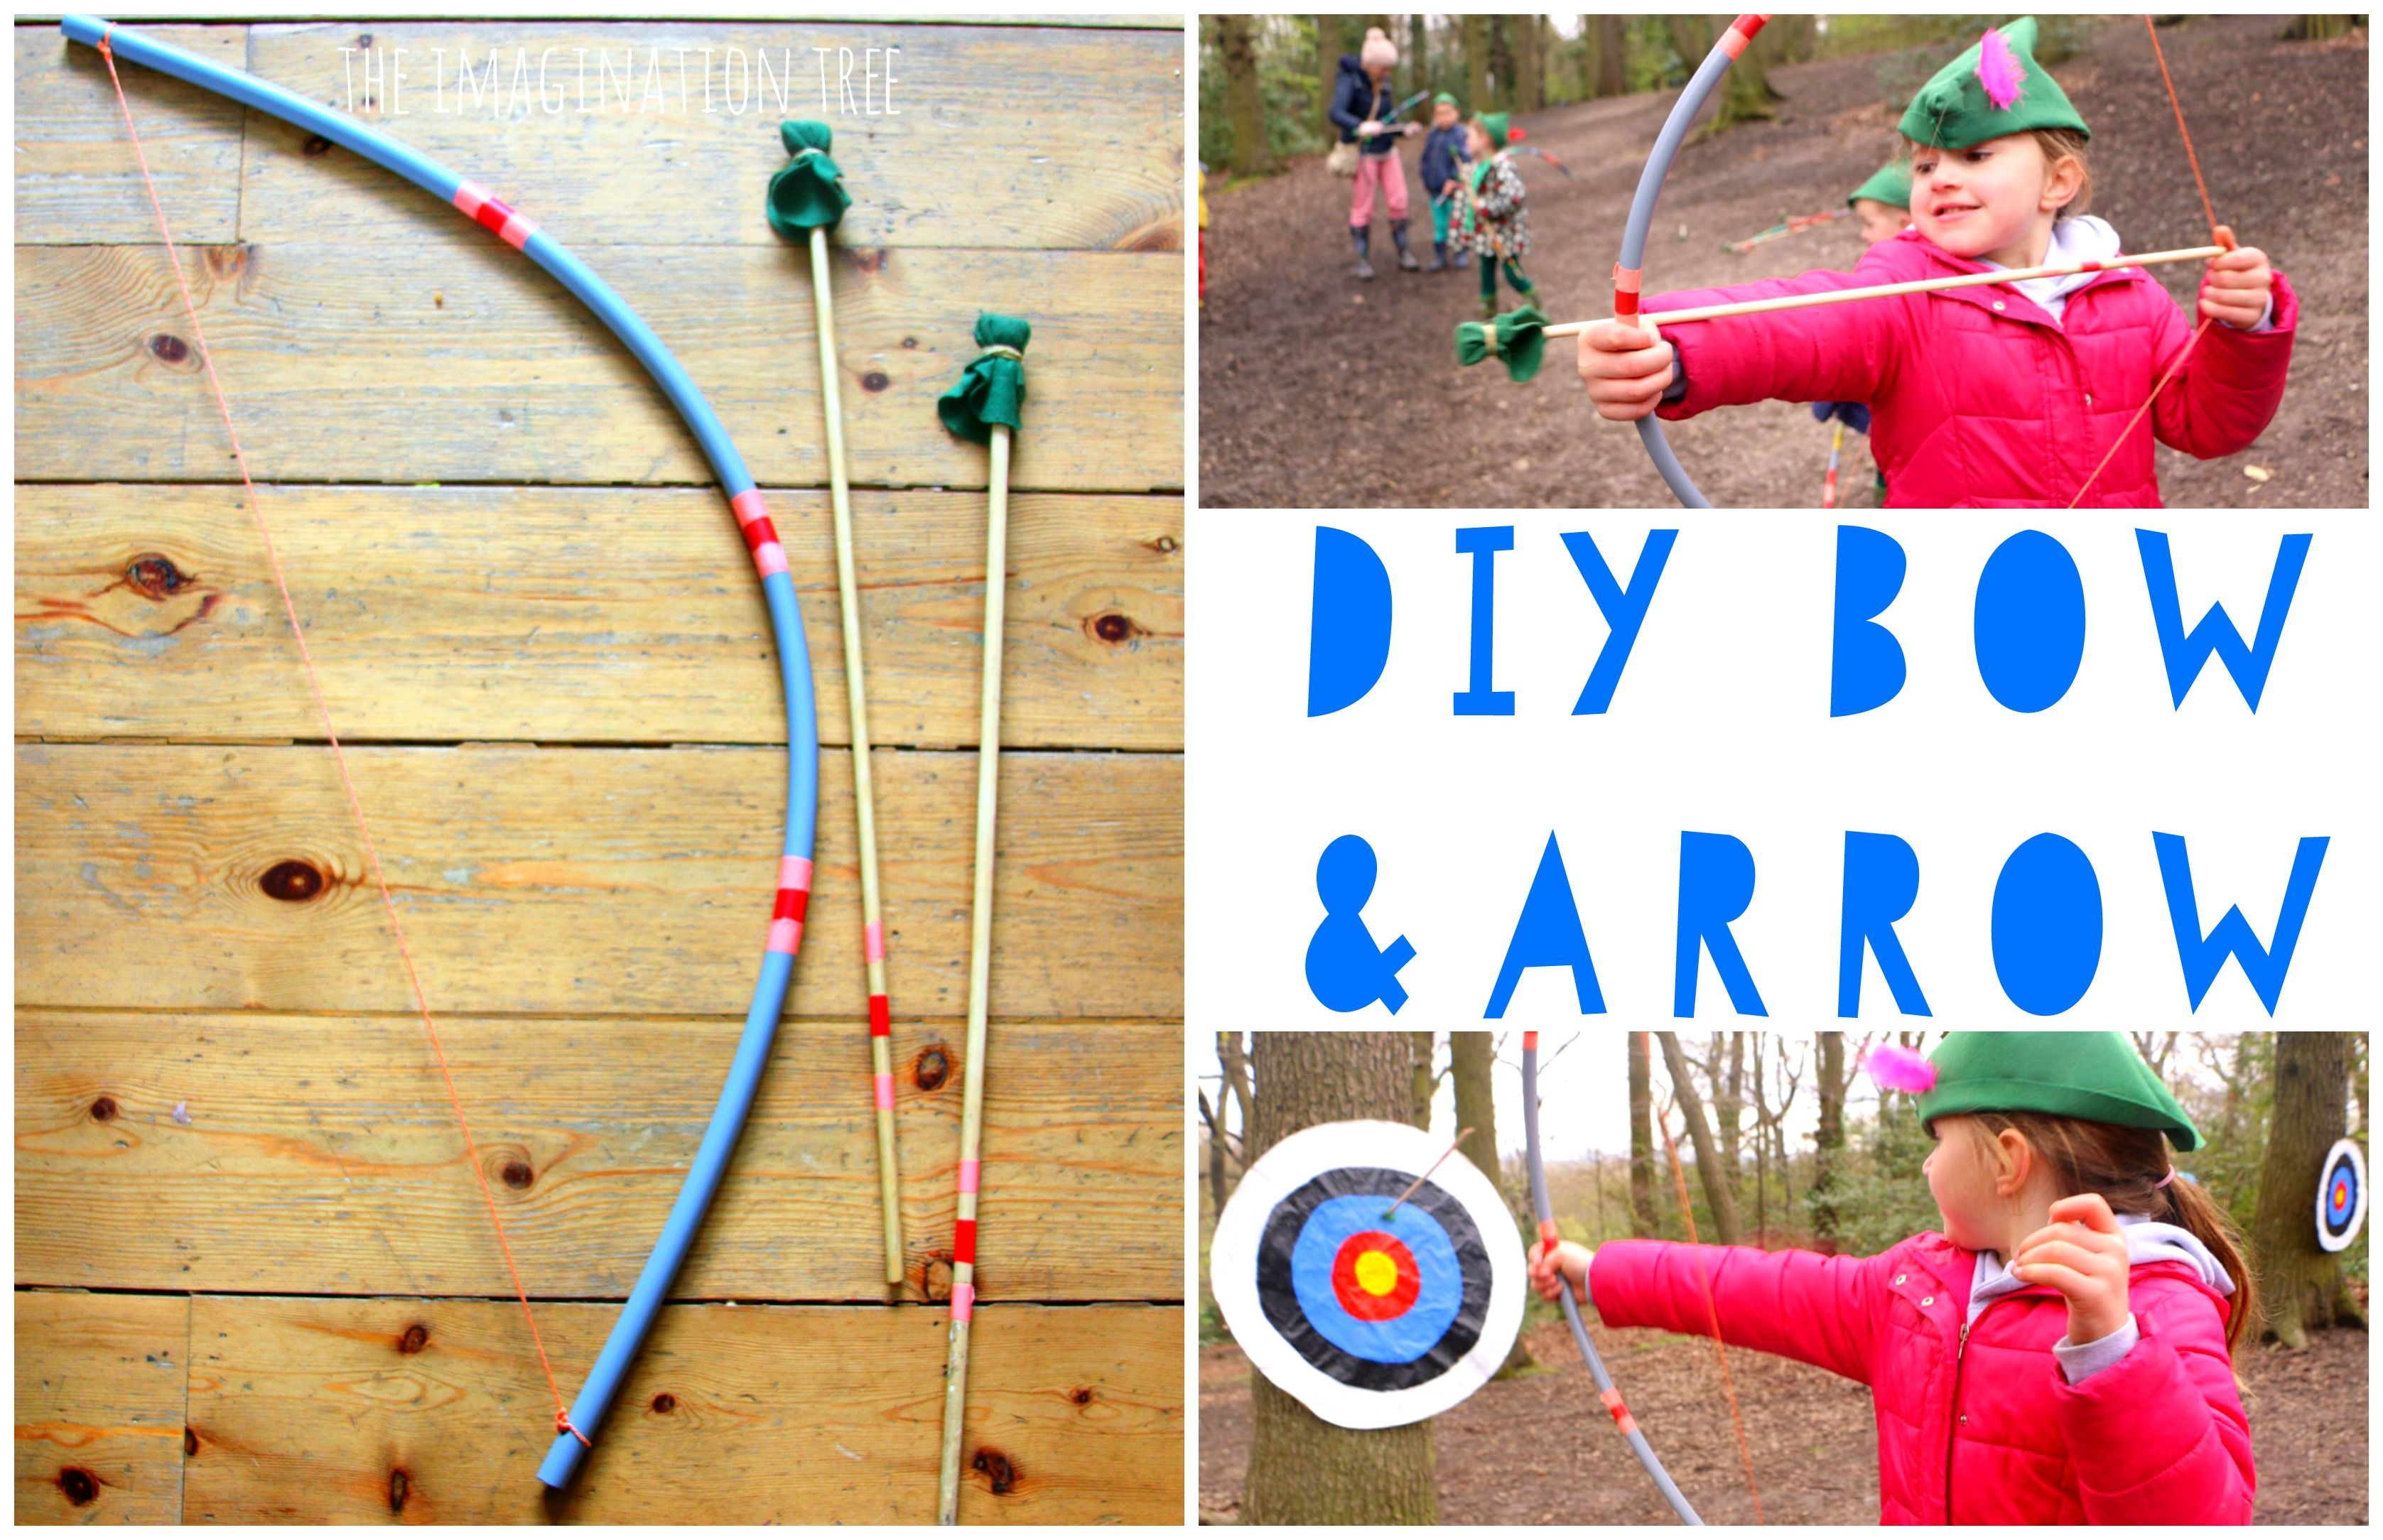 Make a DIY bow and arrow for kids to play imaginative games, practise target shooting and improve their gross motor skills! So easy to make and fantastic quality to give as a homemade gift too. This wonderful idea is submitted by my lovely friend Tineke, [who also contributed the fantastic conker spiderweb craft a couple...Read More »